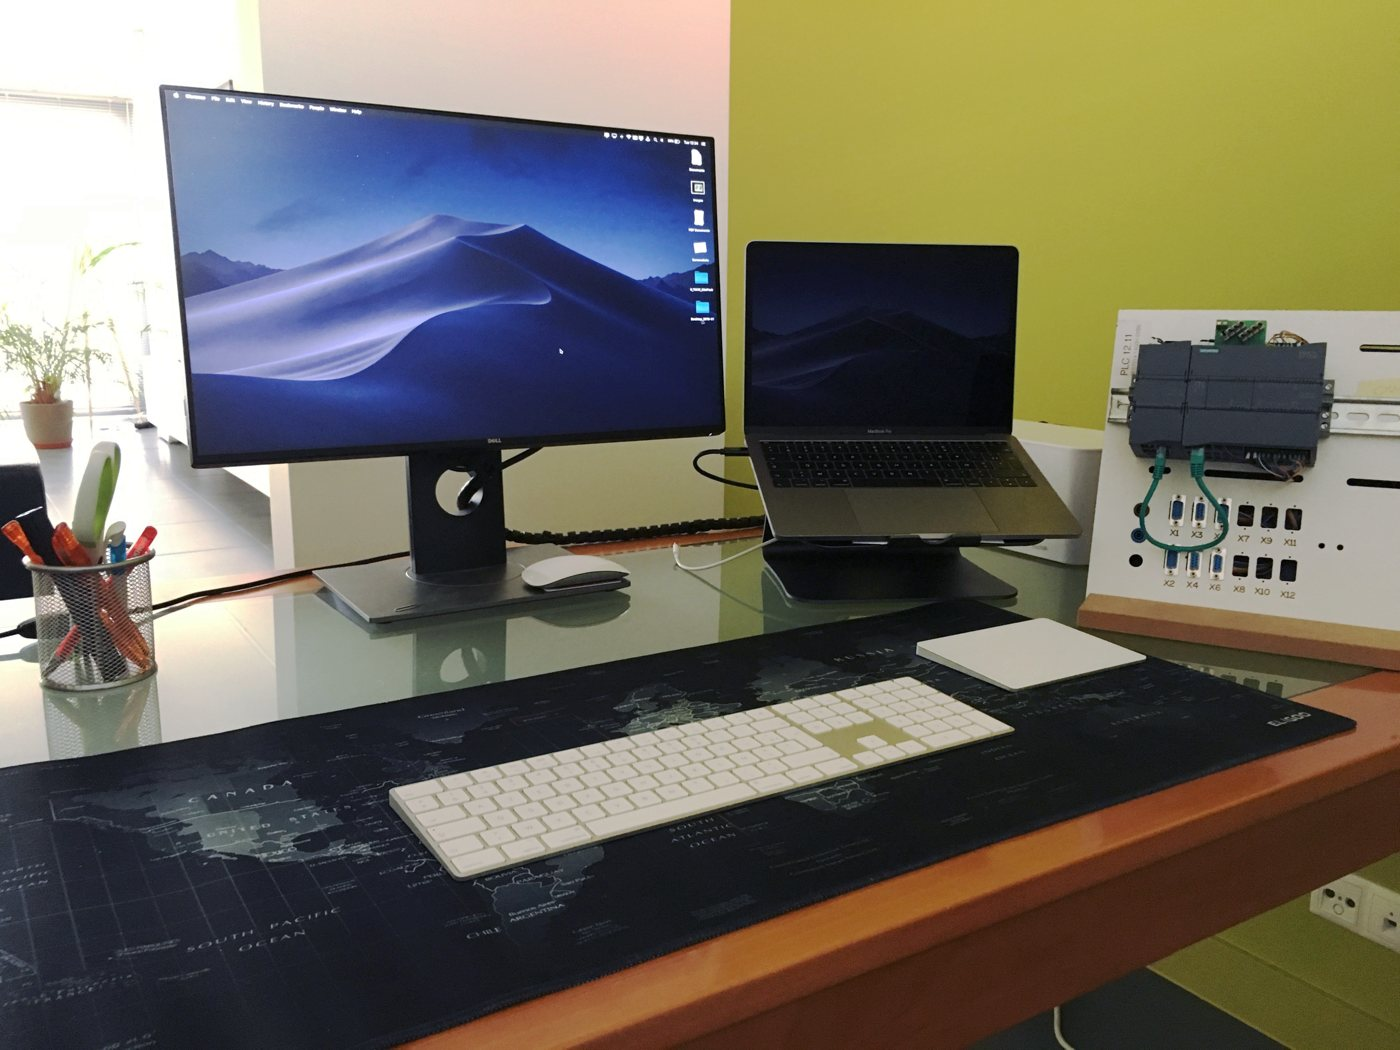 Kurt Van de Poel's Mac and iPhone setup